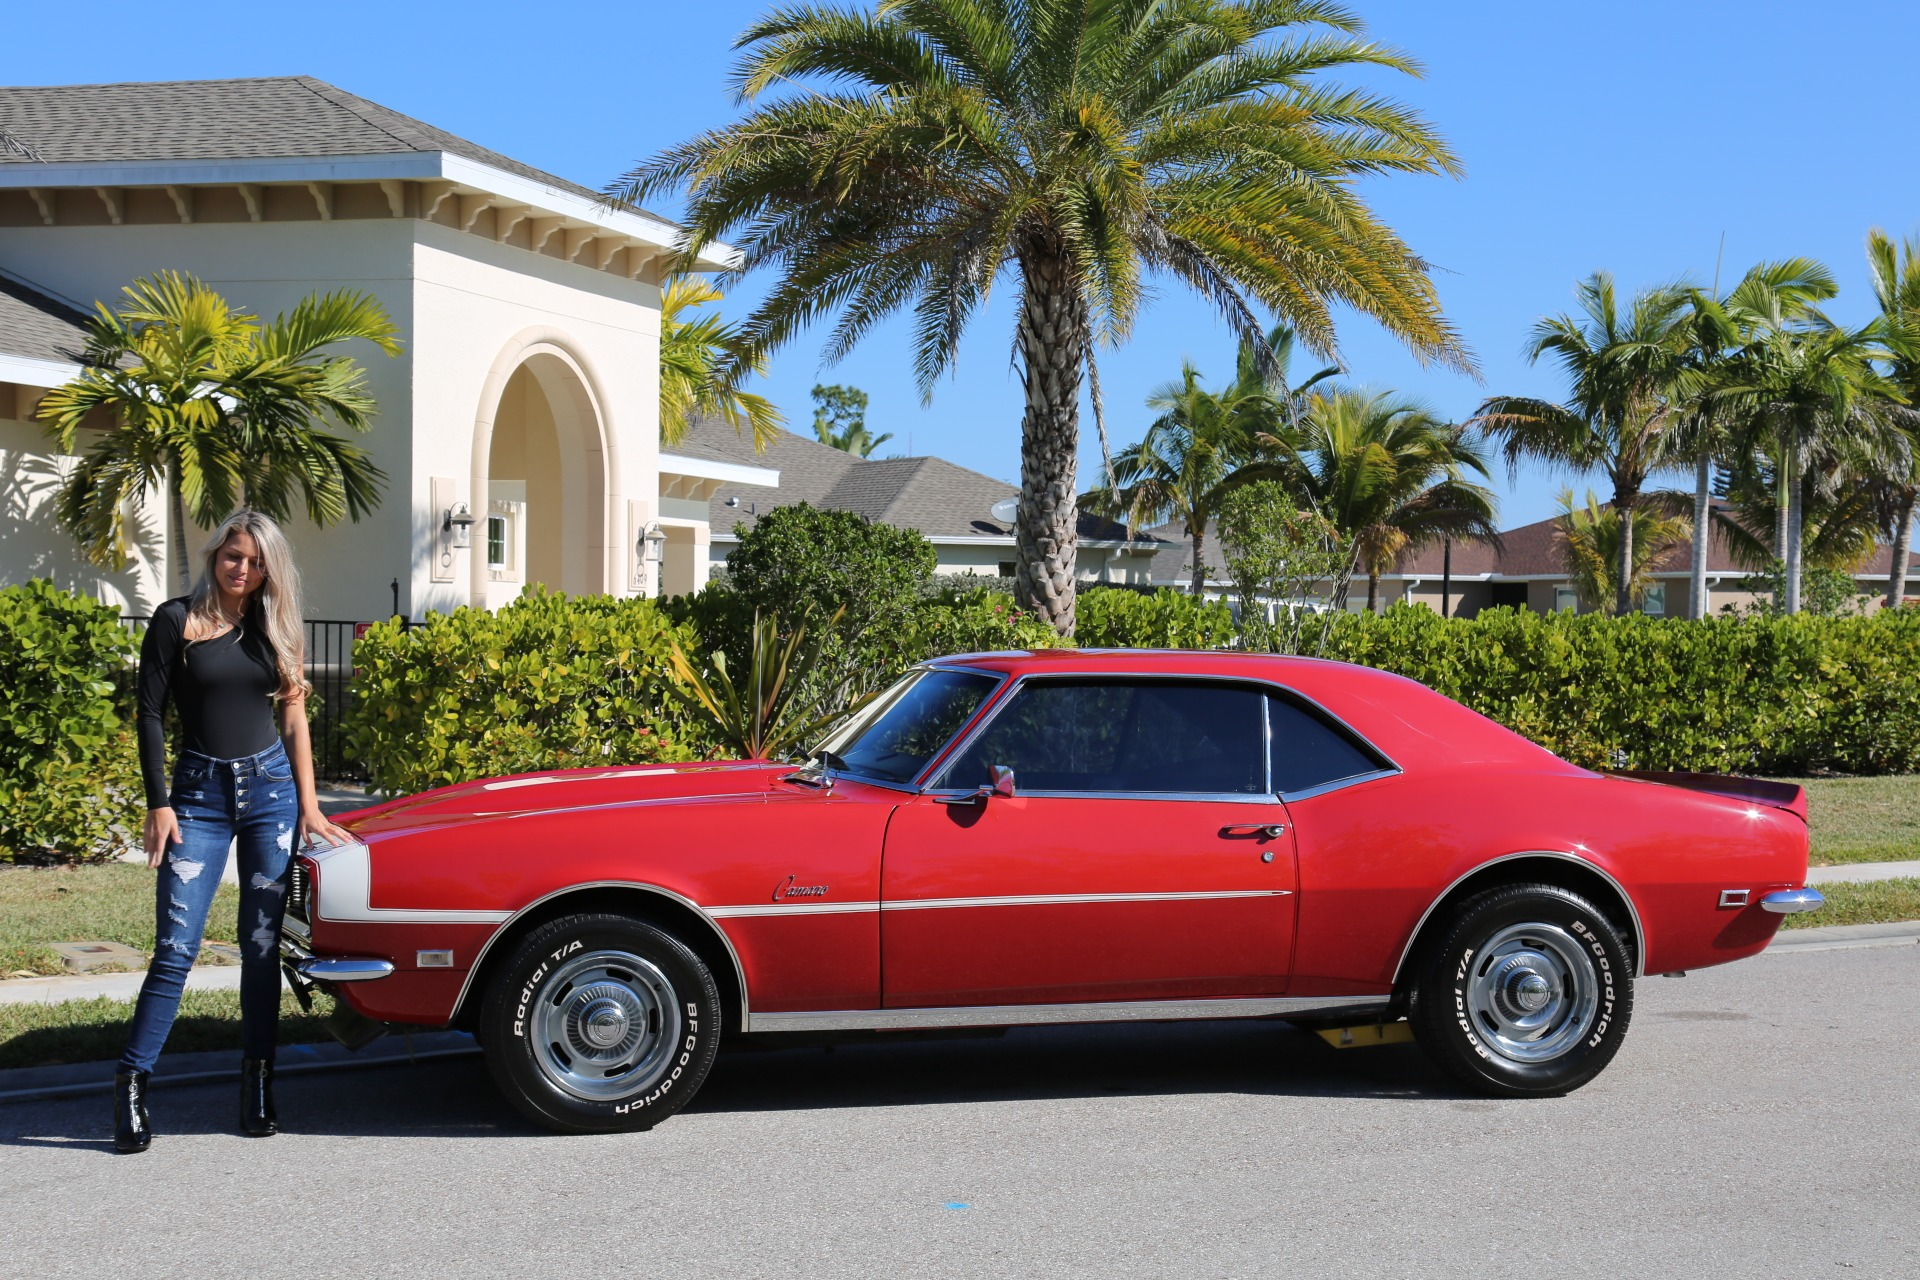 Used 1968 Chevrolet Camaro Camaro V8 350 Auto for sale Sold at Muscle Cars for Sale Inc. in Fort Myers FL 33912 1